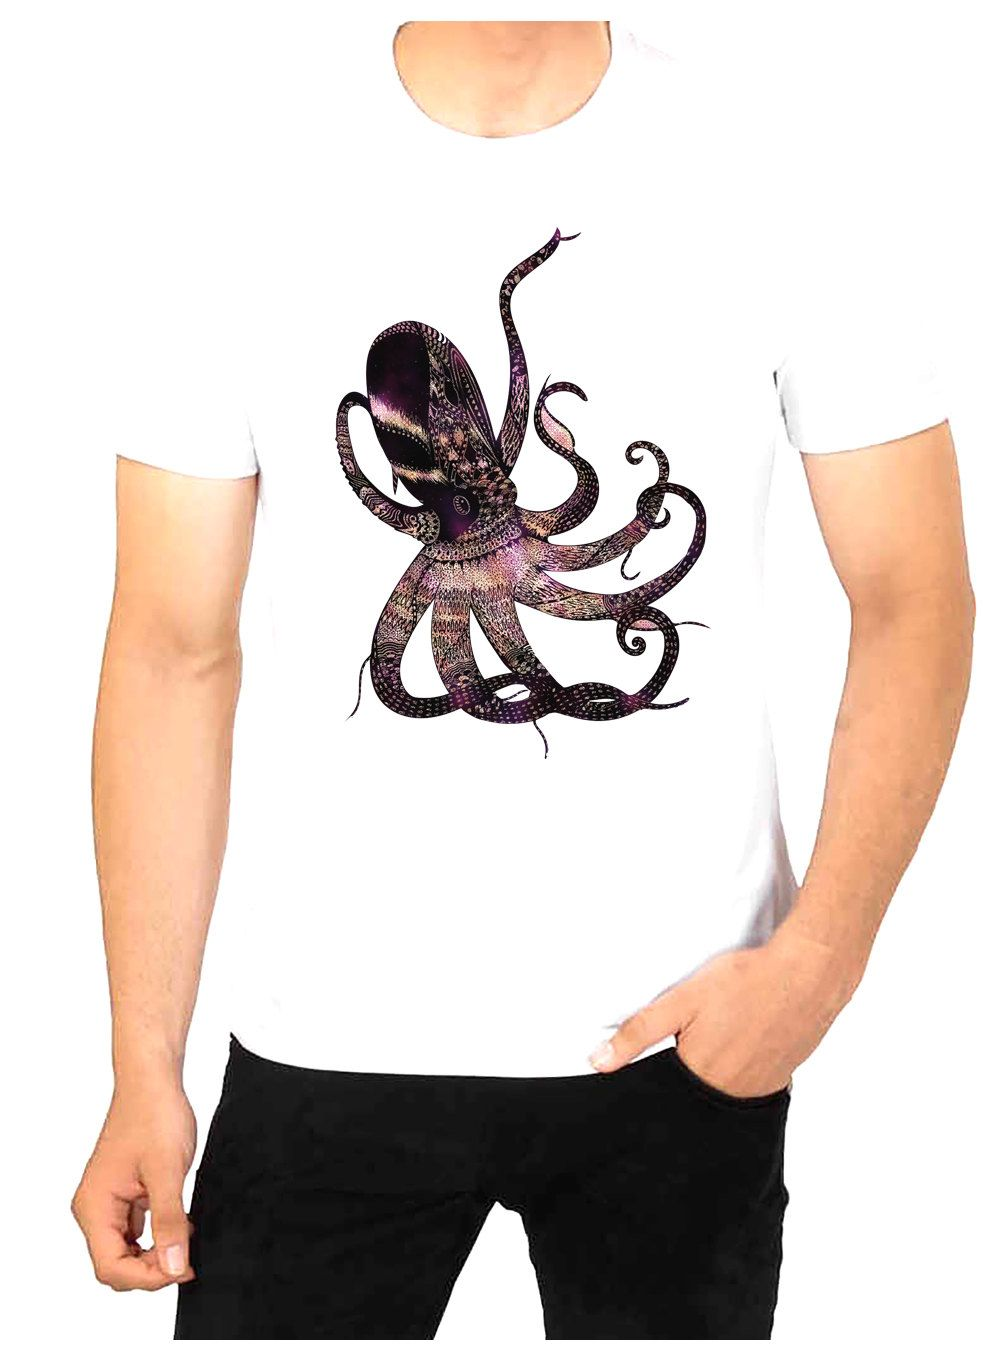 octopuseMASS by BANDSTARRSTORE on Etsy